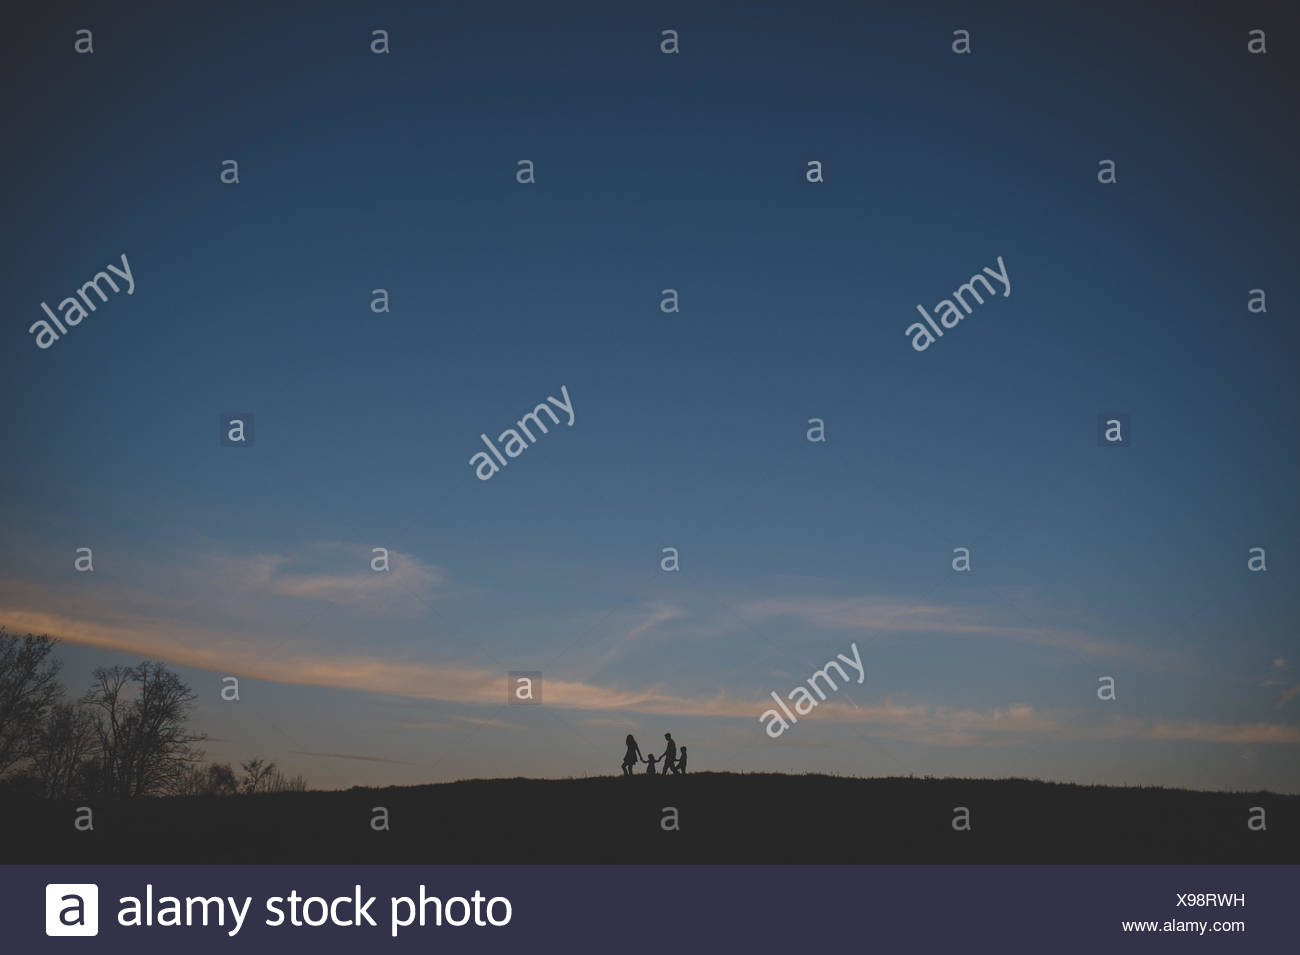 Silhouetted view of parents with son and daughter strolling on hill at dusk - Stock Image